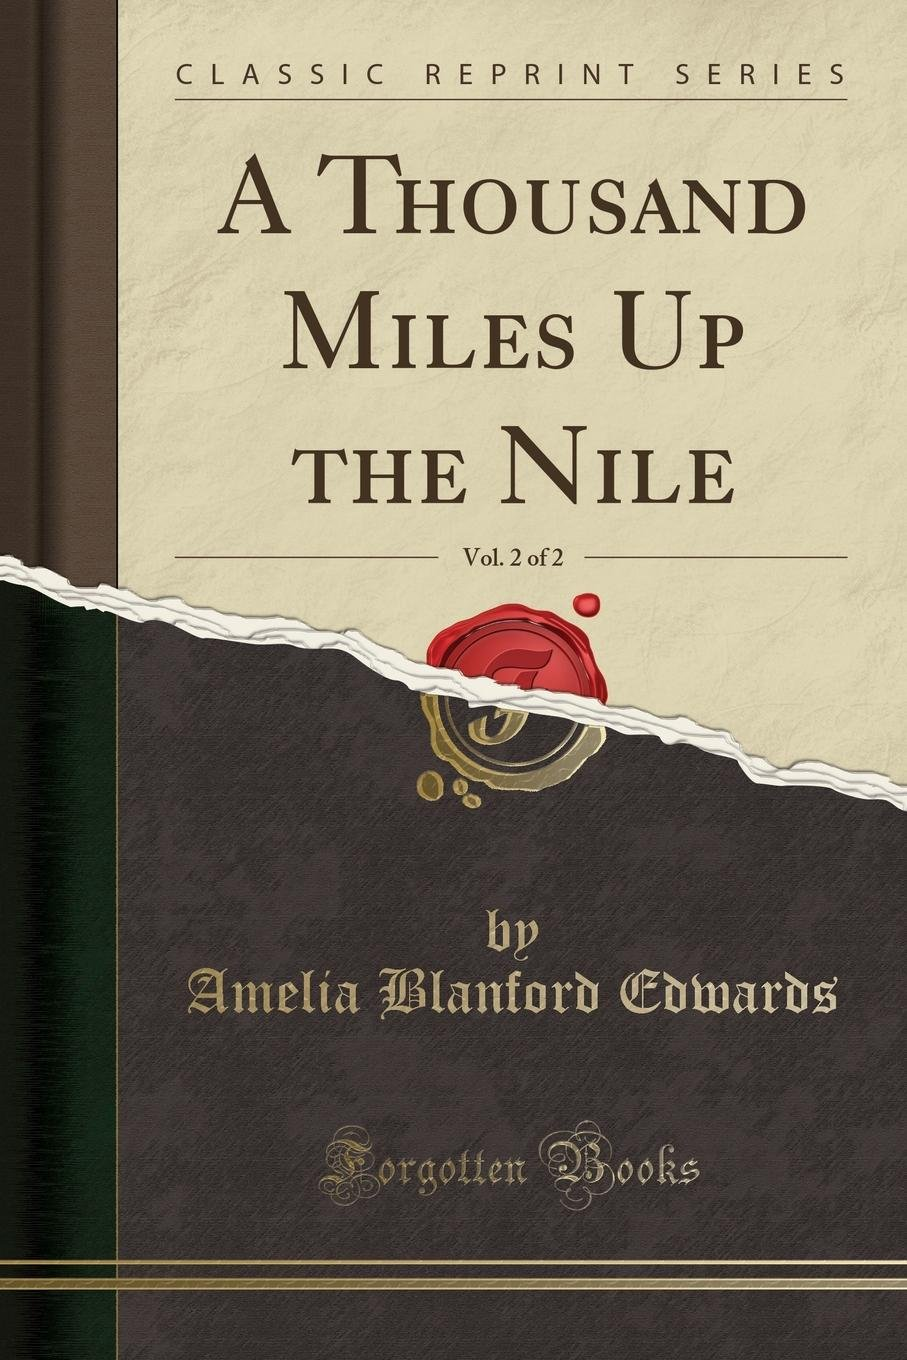 A Thousand Miles Up the Nile, Vol. 2 of 2 (Classic Reprint)